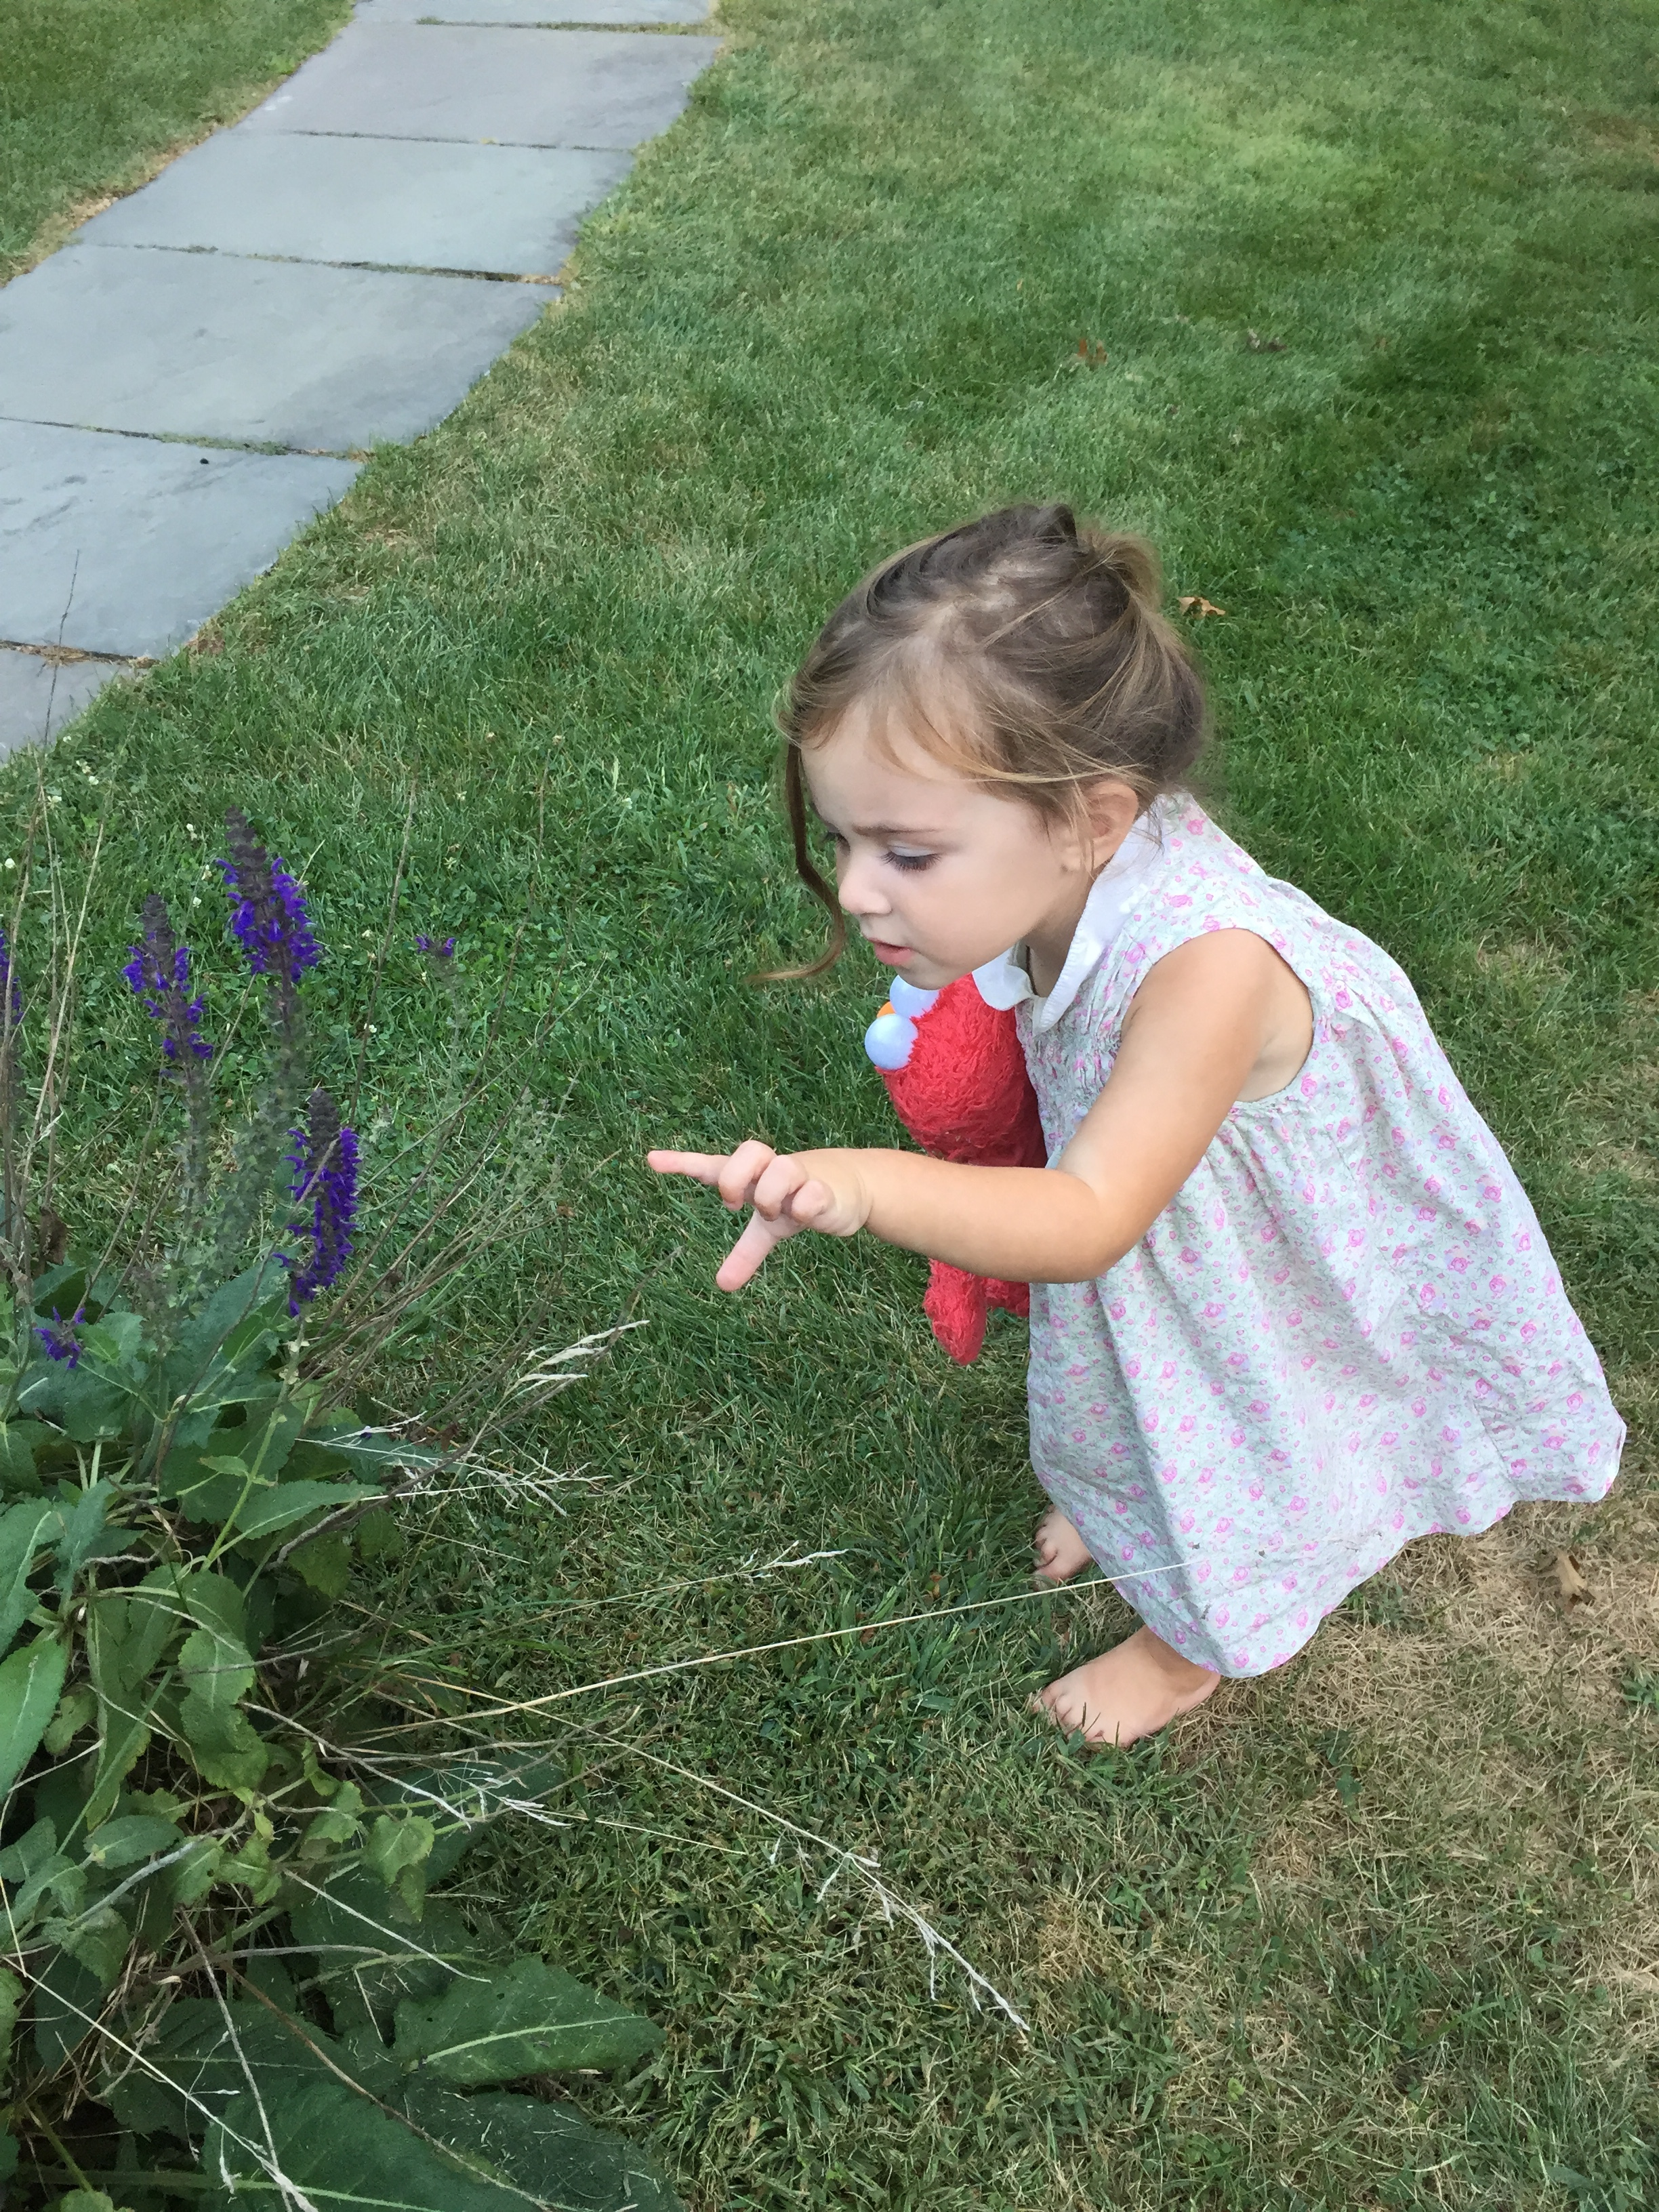 A natural lawn can be beautiful AND safe